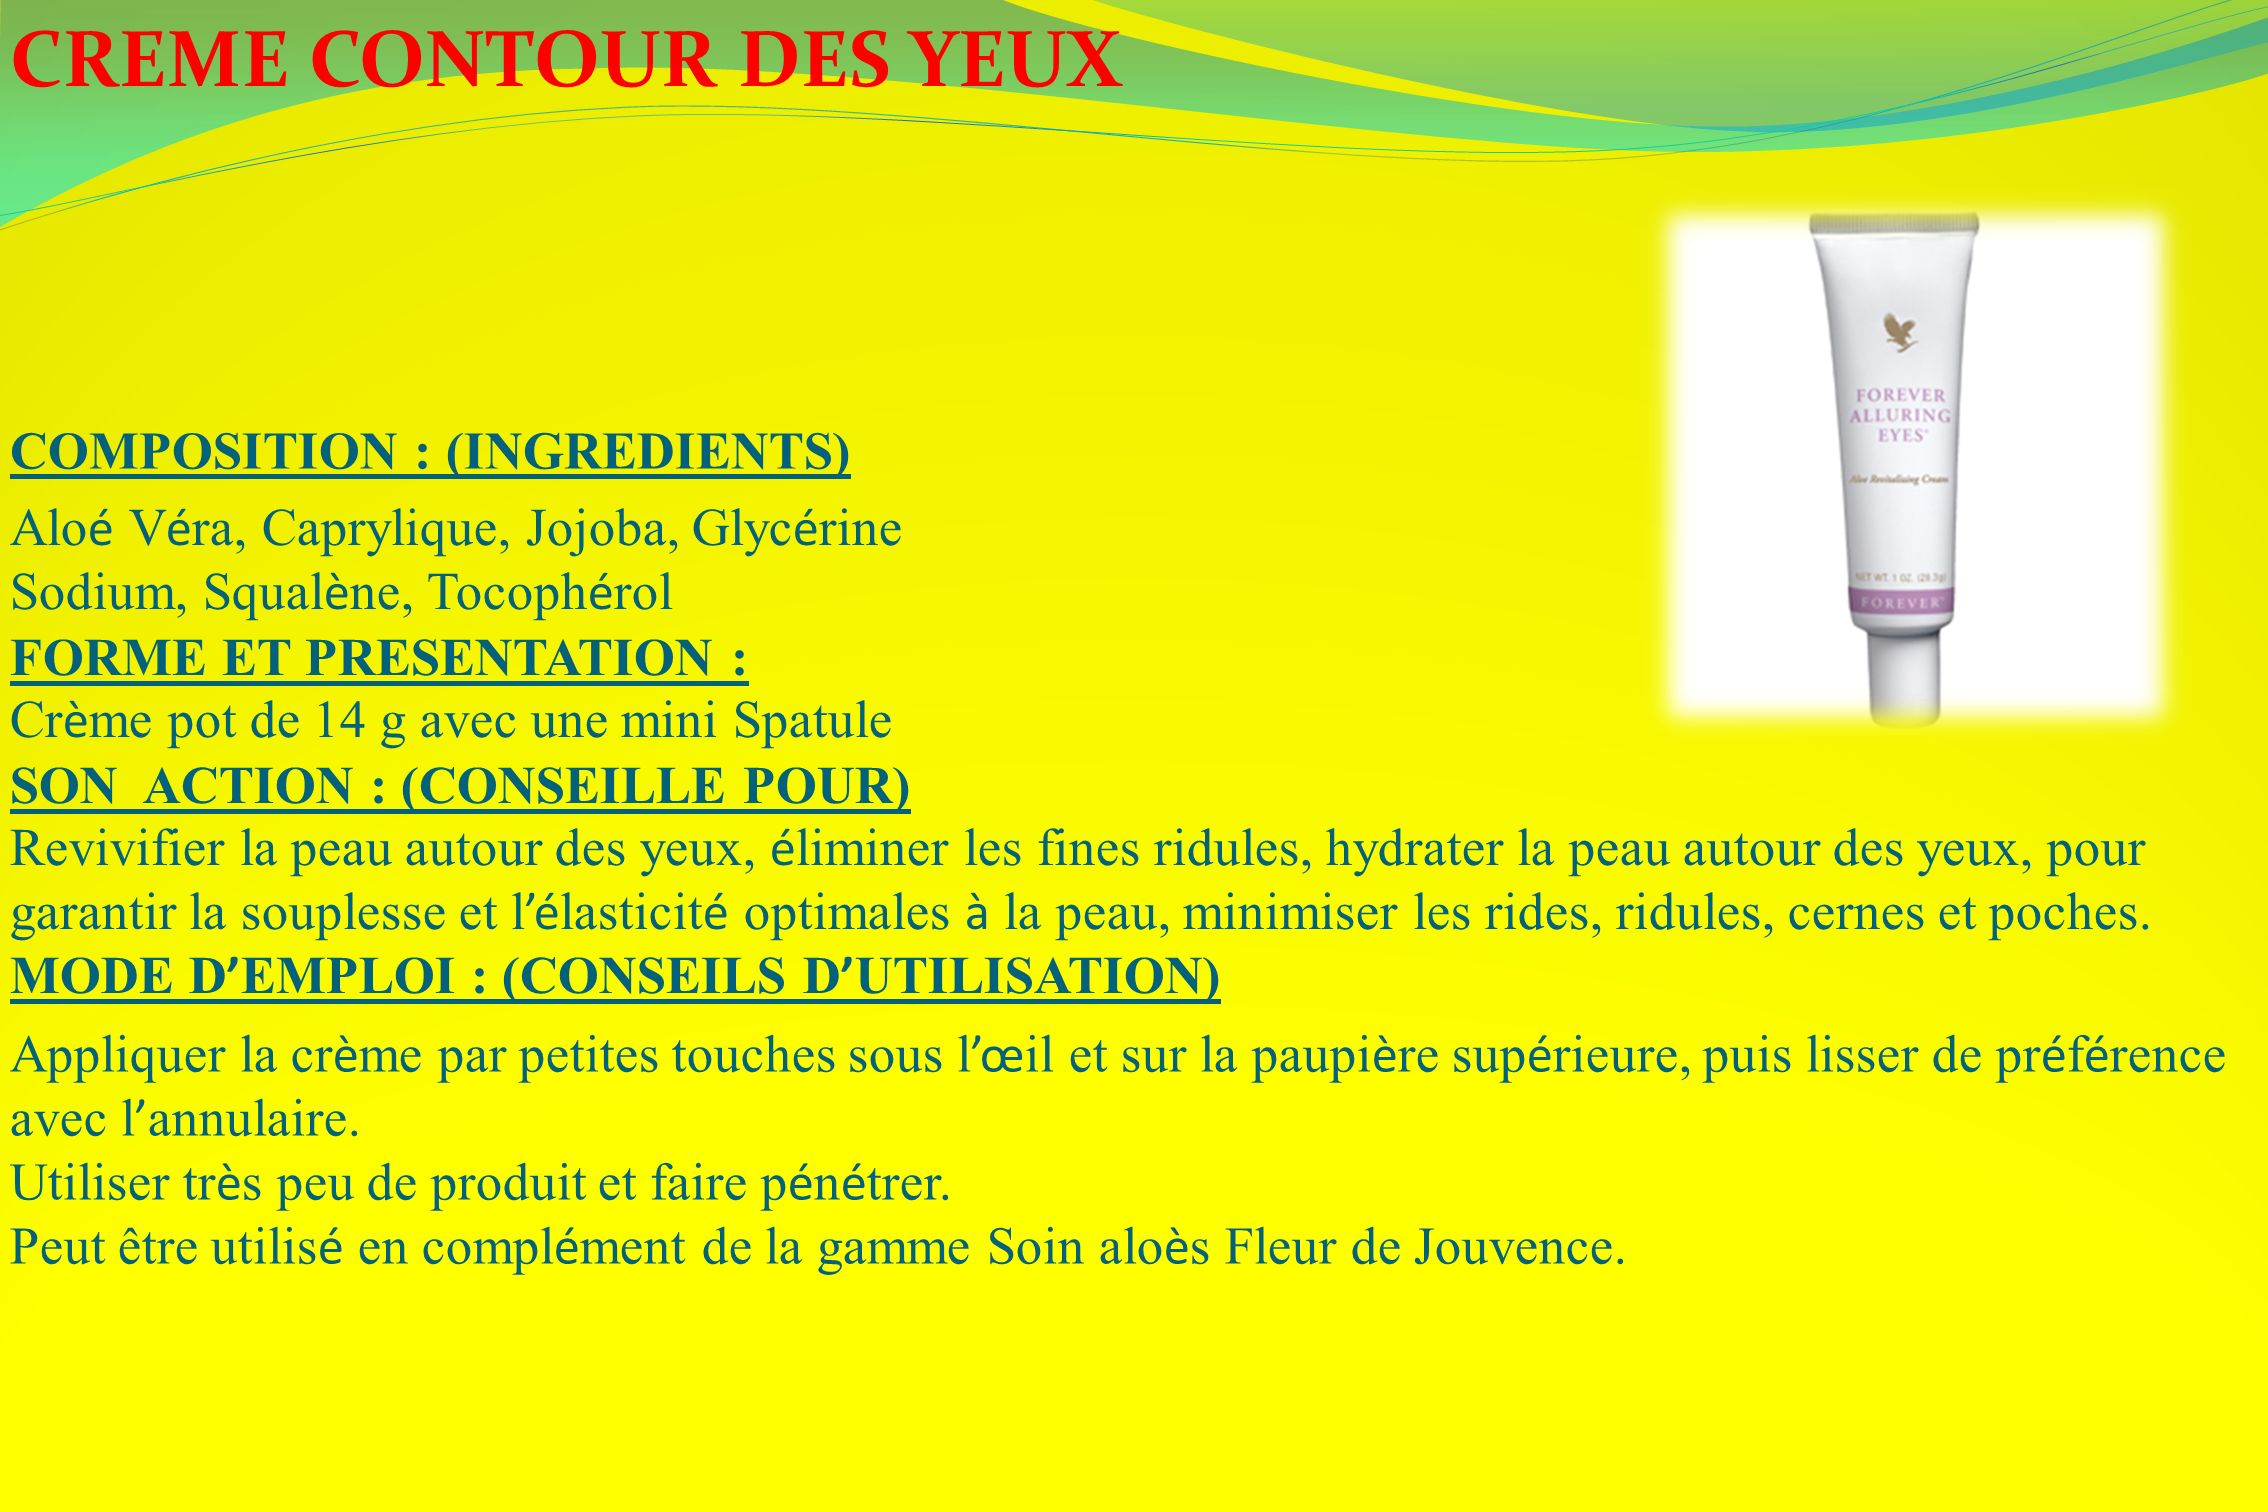 CREME CONTOUR DES YEUX COMPOSITION : (INGREDIENTS)